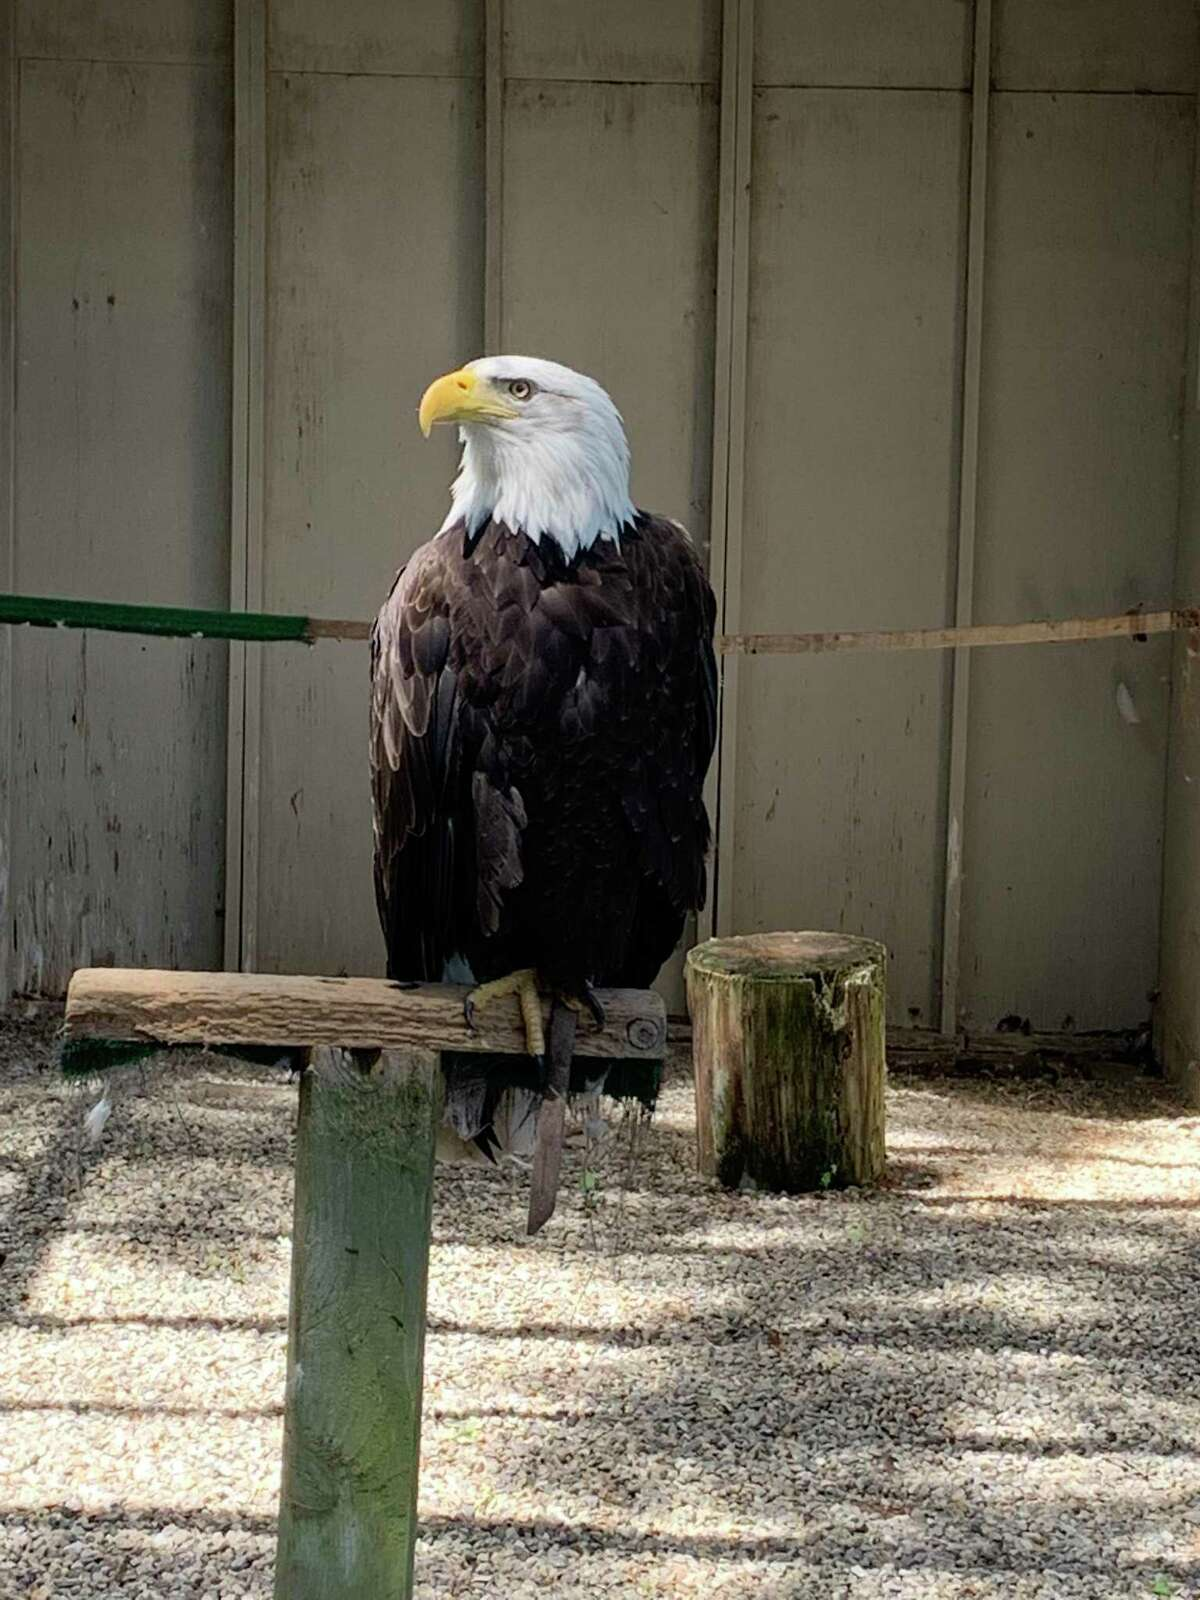 Some of the eagles from Earthplace's Animal Hall in Westport. The nonprofit organization, which seeks to teach families about the natural world, is matching donations made throughout July 2021 to help pay for the care and feeding of its birds of prey.